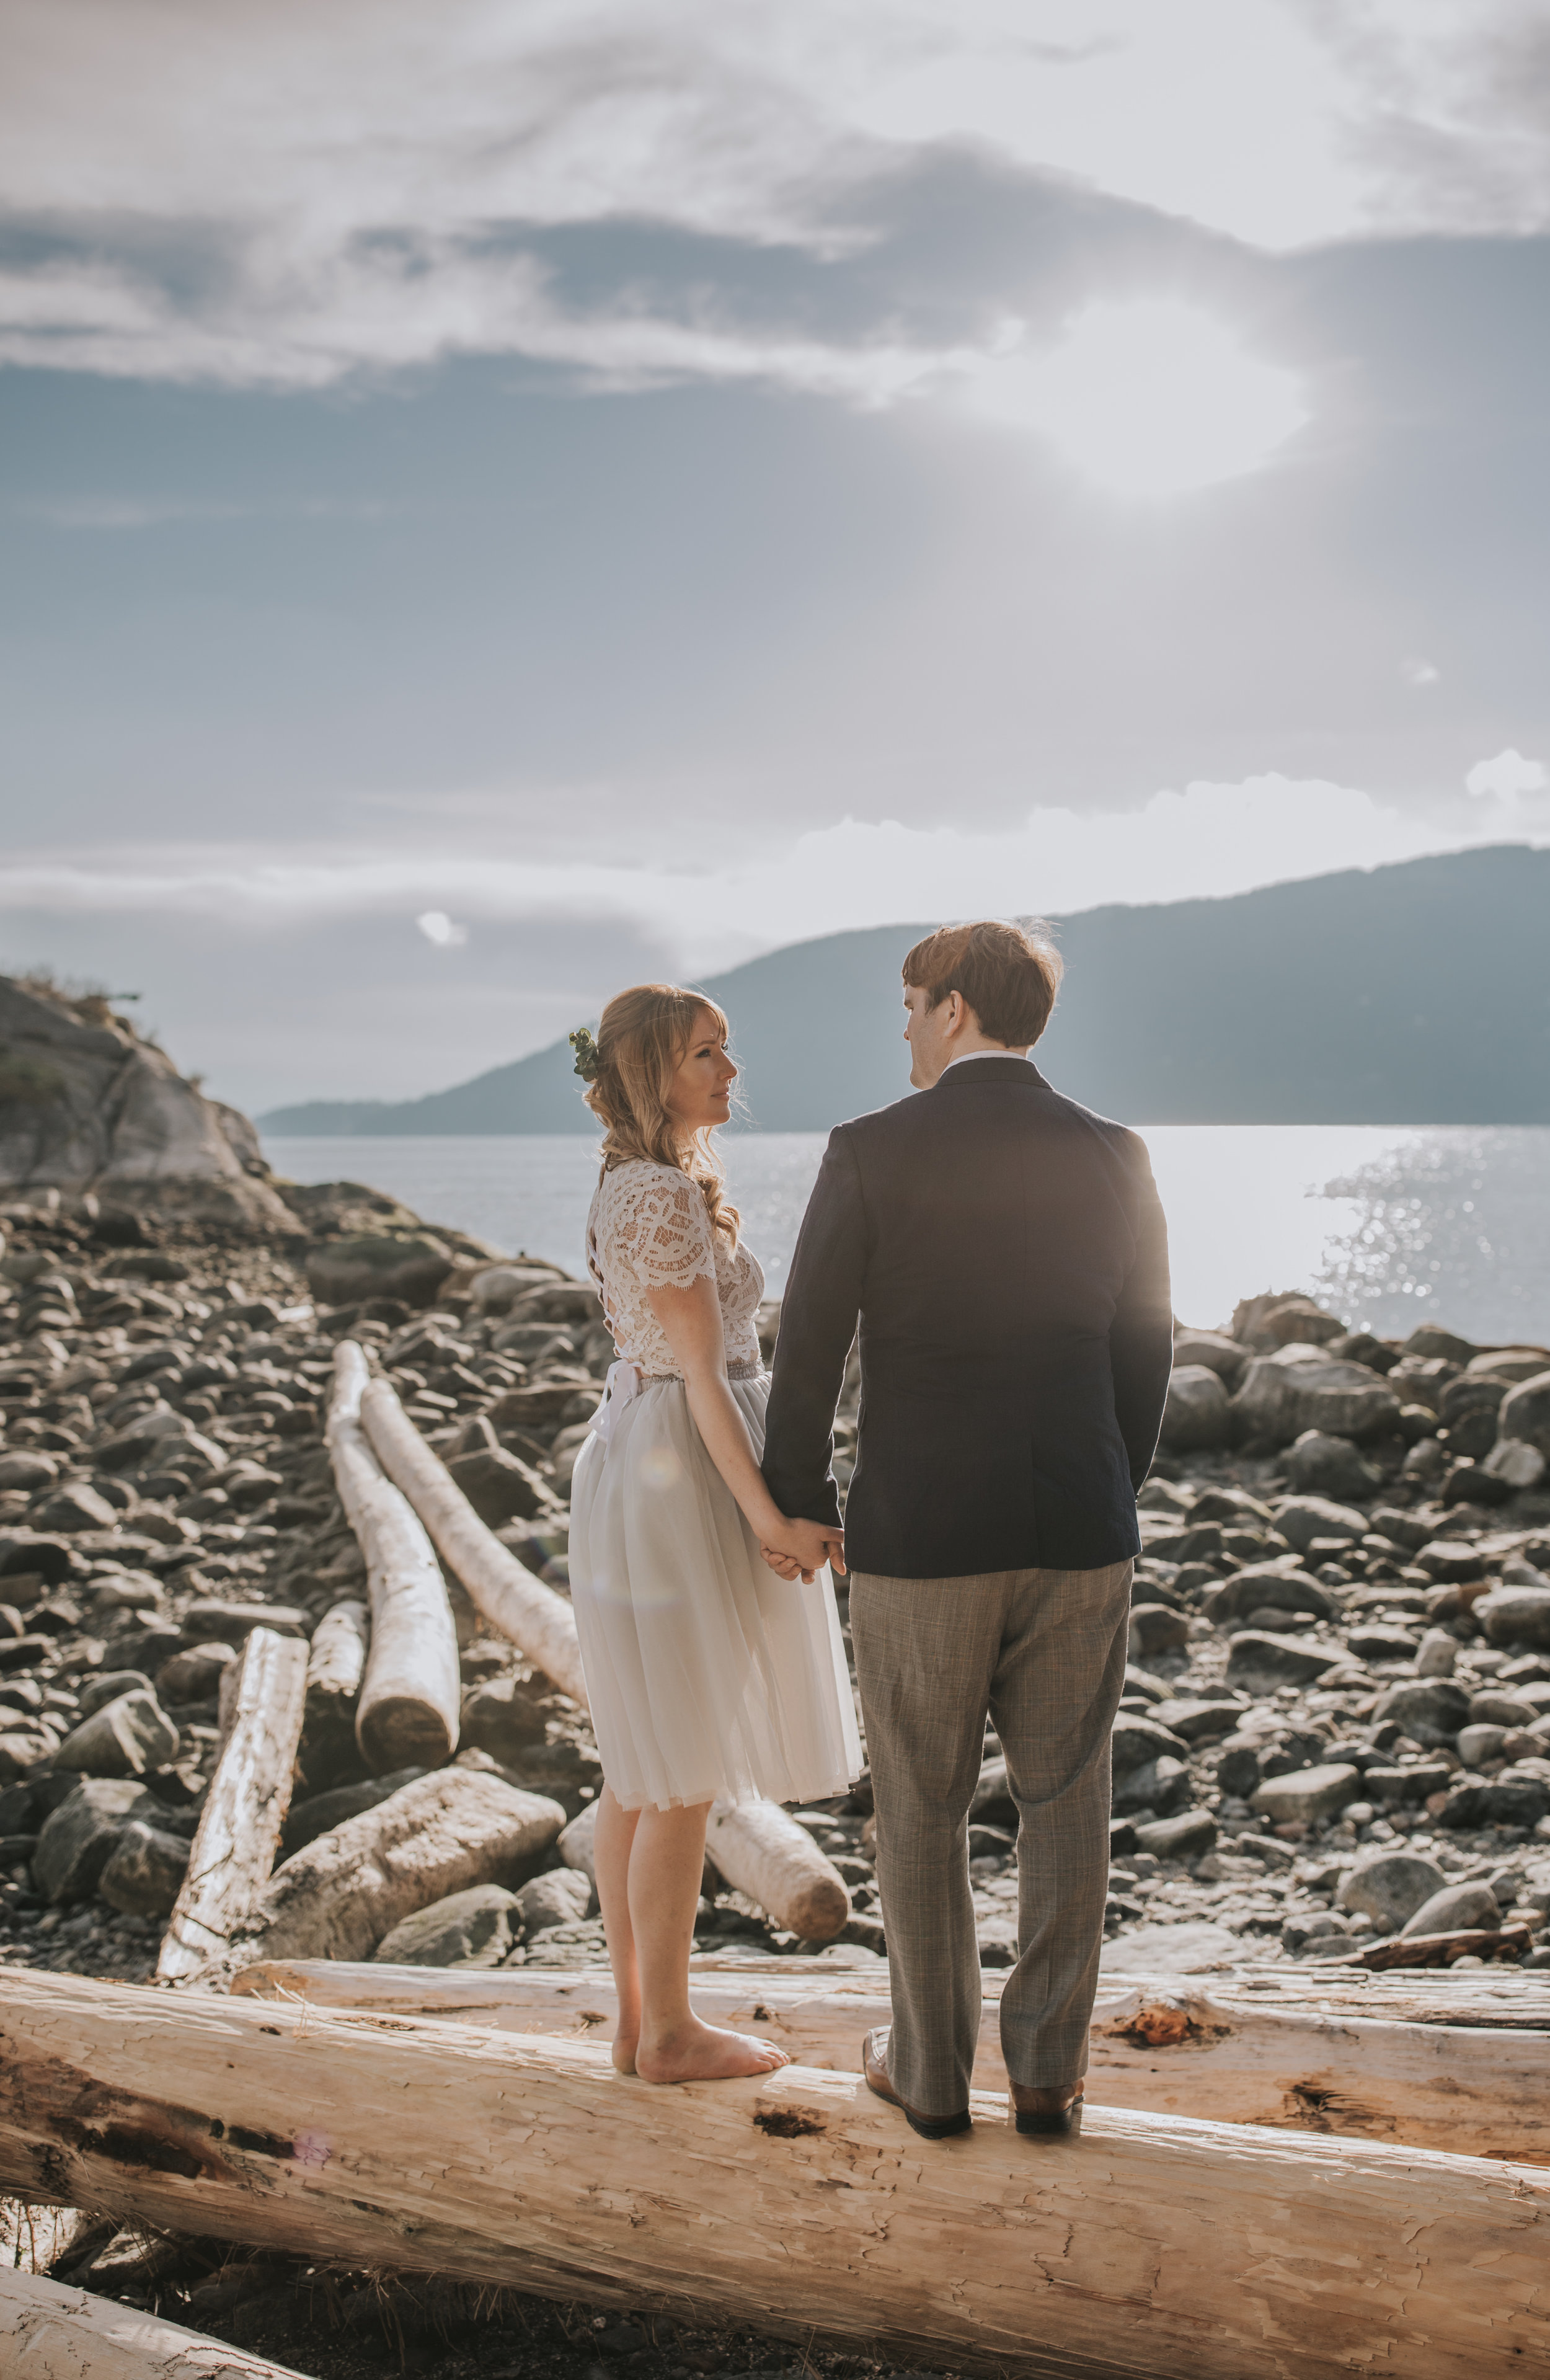 Whytecliff Park Engagement Photos - Vancouver Wedding Photographer - Jennifer Picard Photography053.JPG